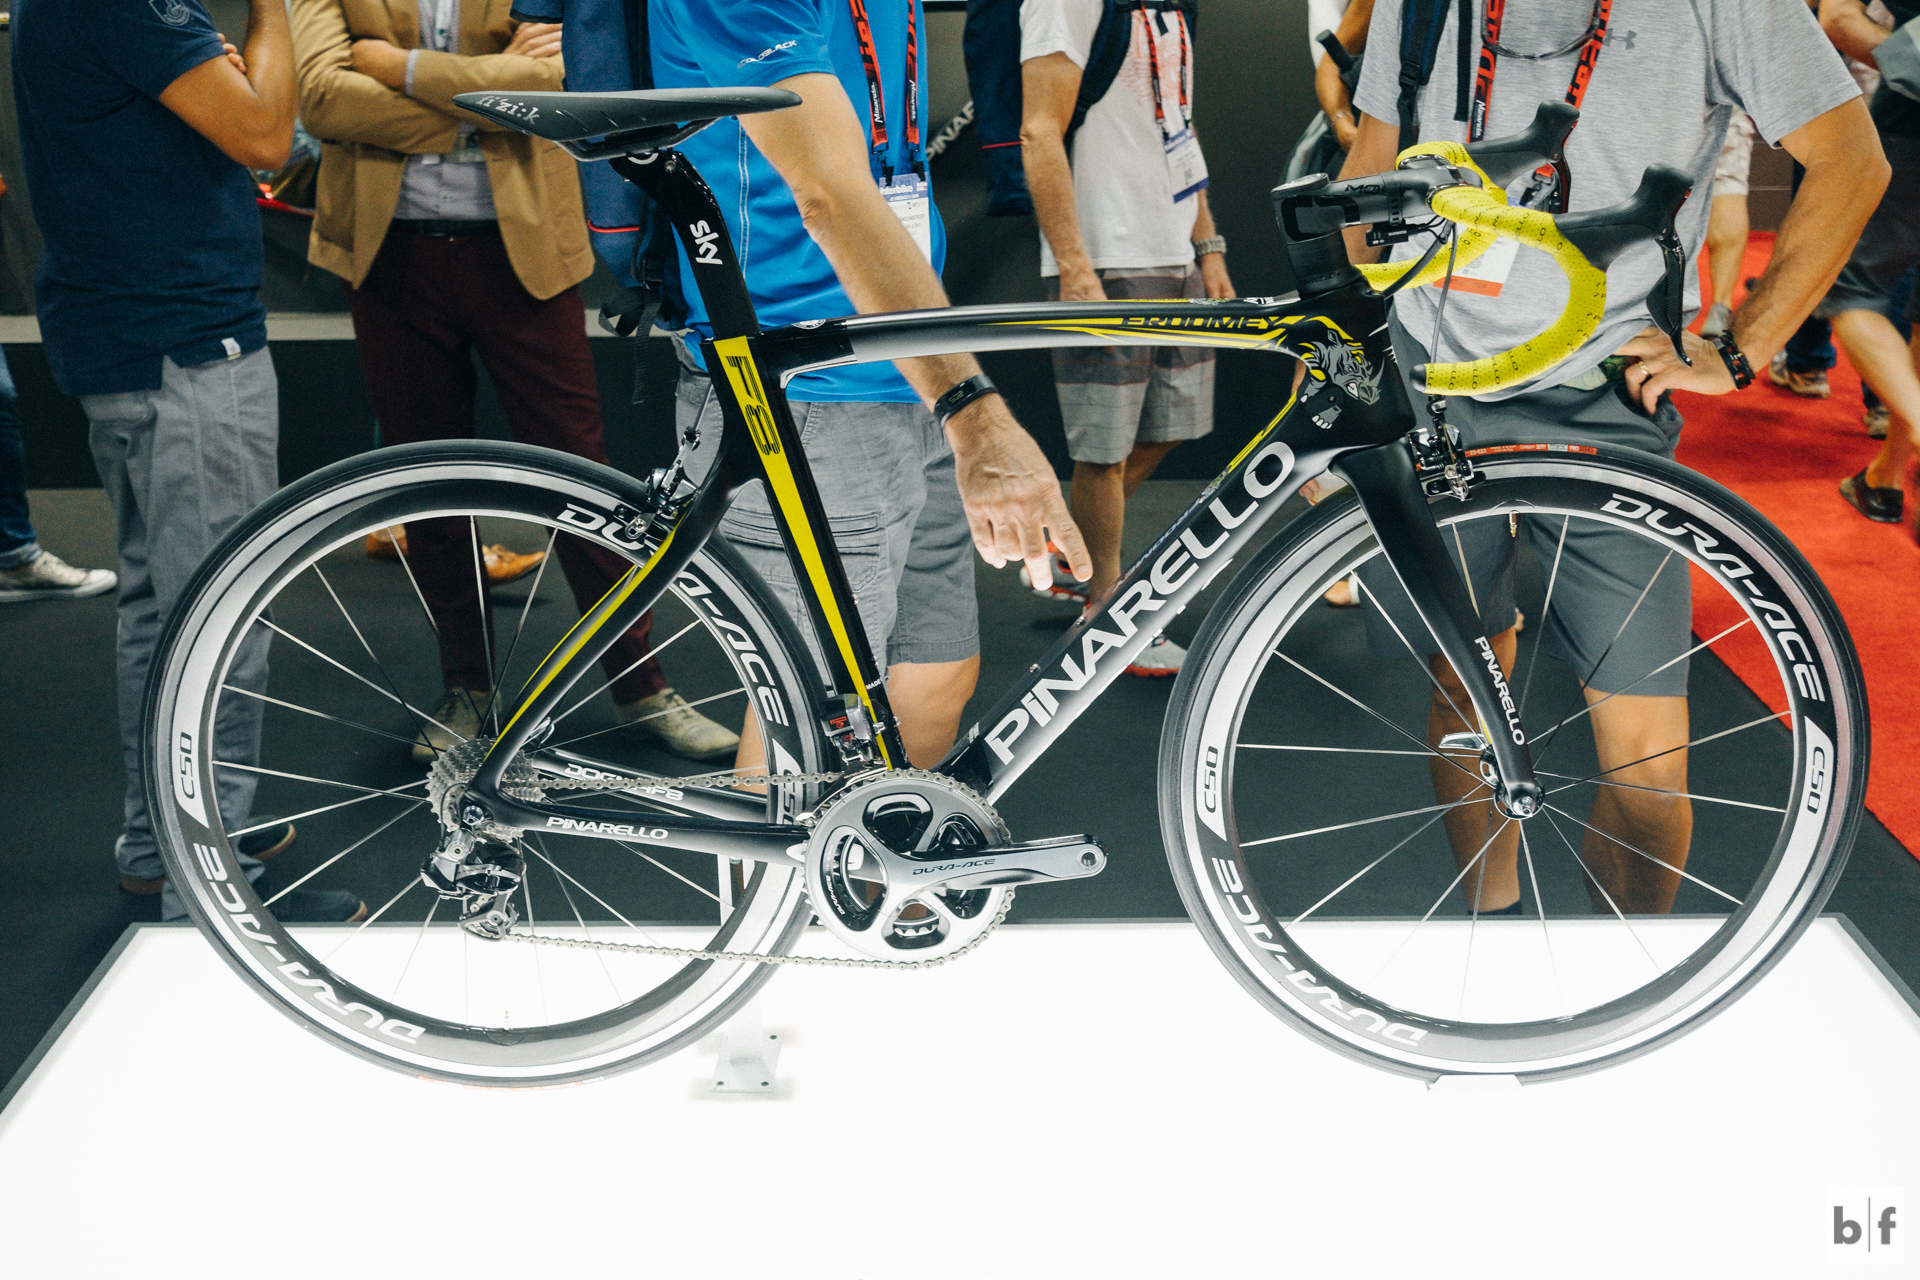 You can't top the Wiggo bike but i felt compelled to take a photo of Froome's TdF winning ride.